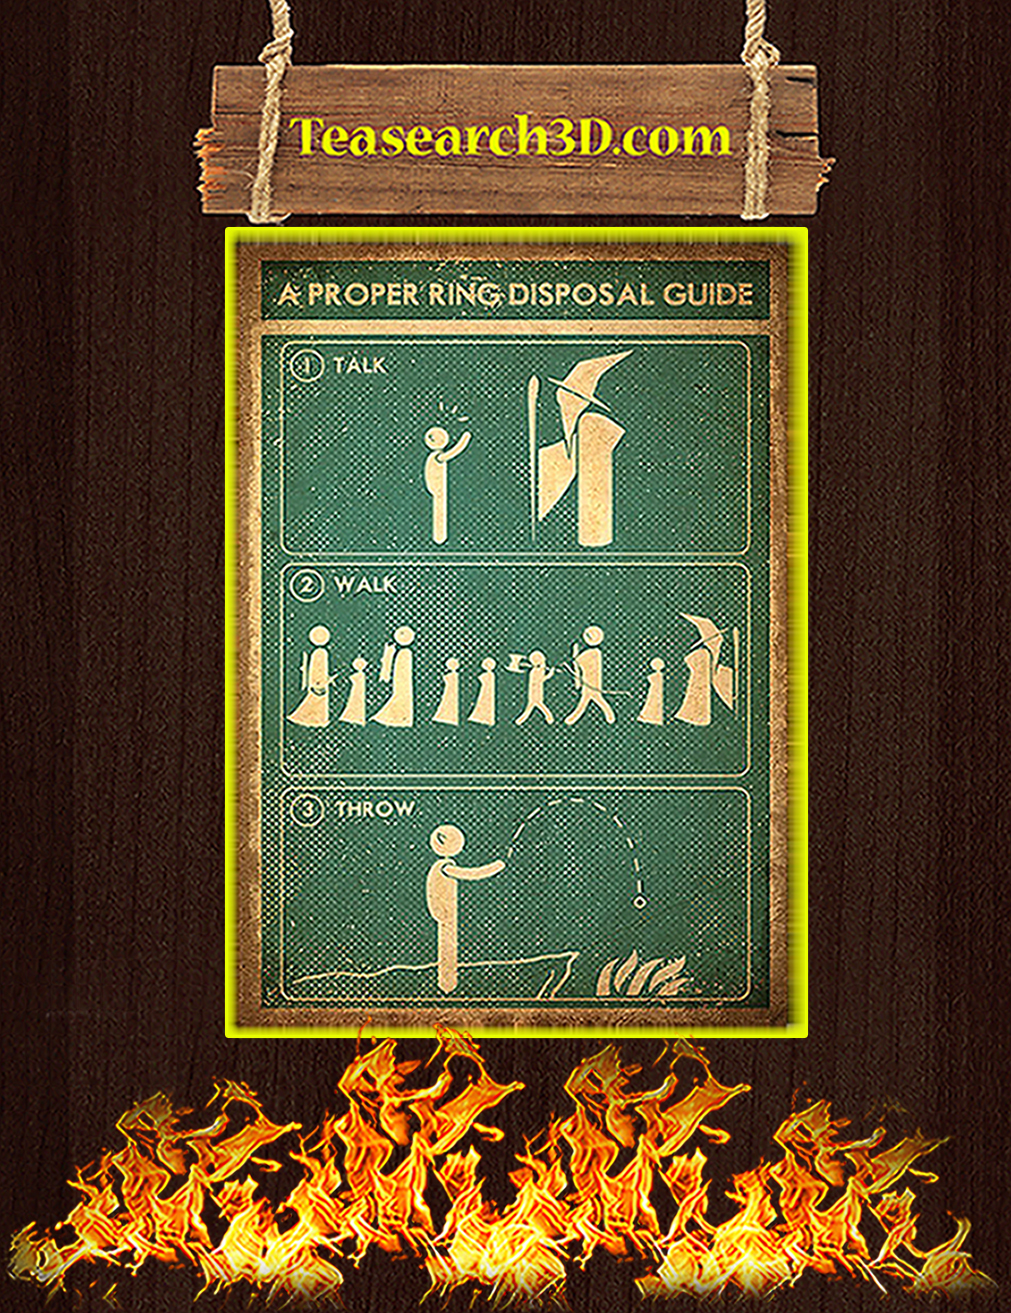 A proper ring disposal guide poster